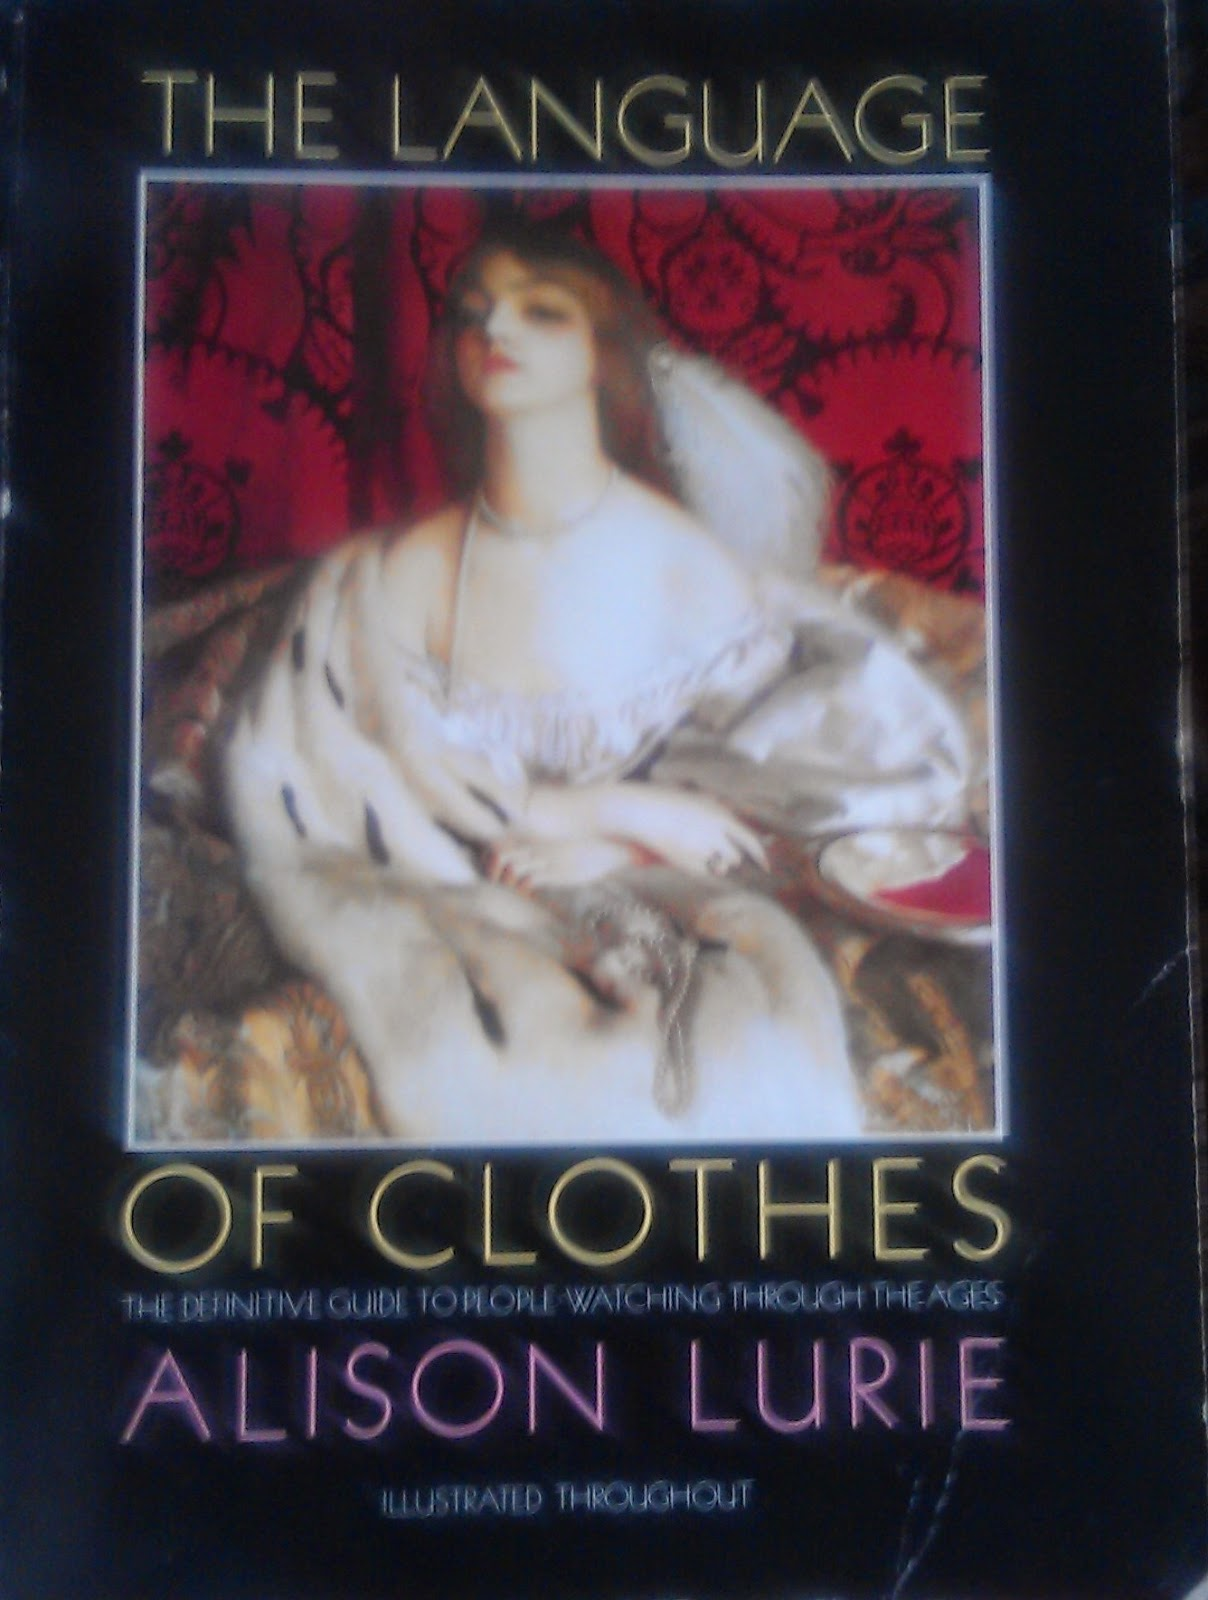 the language of clothes by alison The language of clothes by alison lurie alison lurie, the pulitzer prize - winning novelist, is our savvy guide and interpreter on this tour through the history of fashion, providing unique insights into how changing sex roles, political upheavals, and class structure have influenced costume.